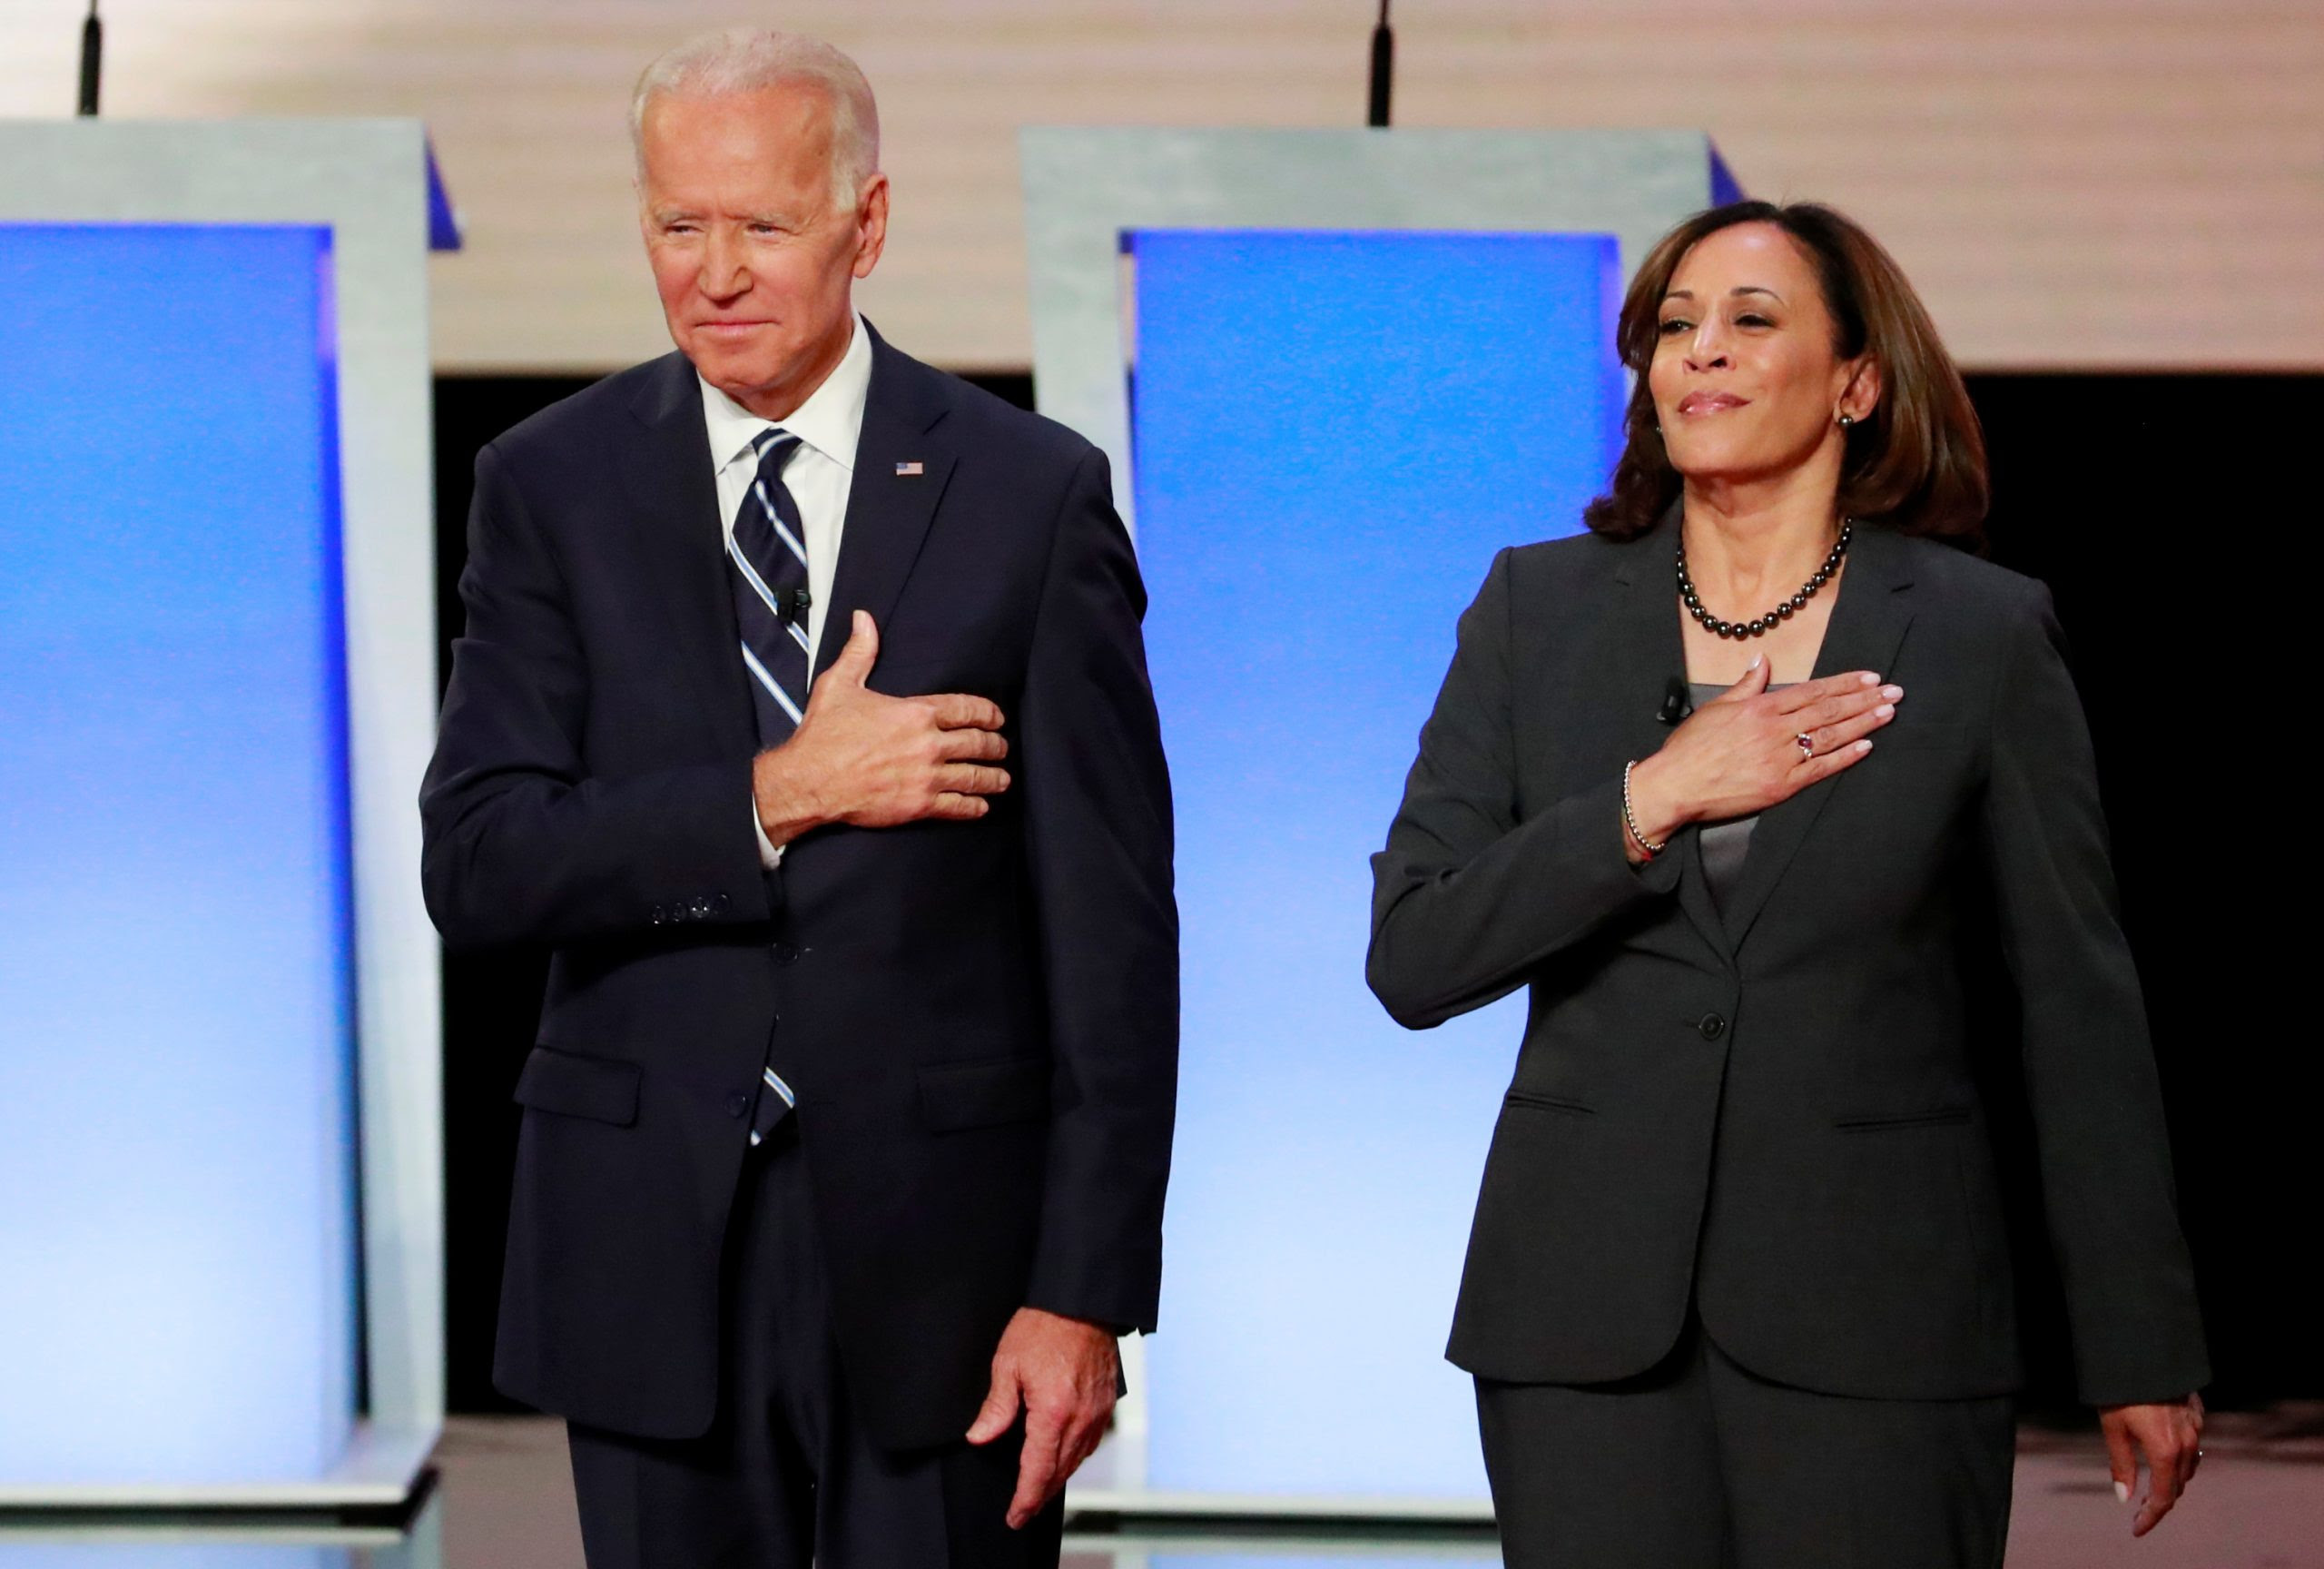 One-time rival Senator Kamala Harris backs Joe Biden for president | amNewYork